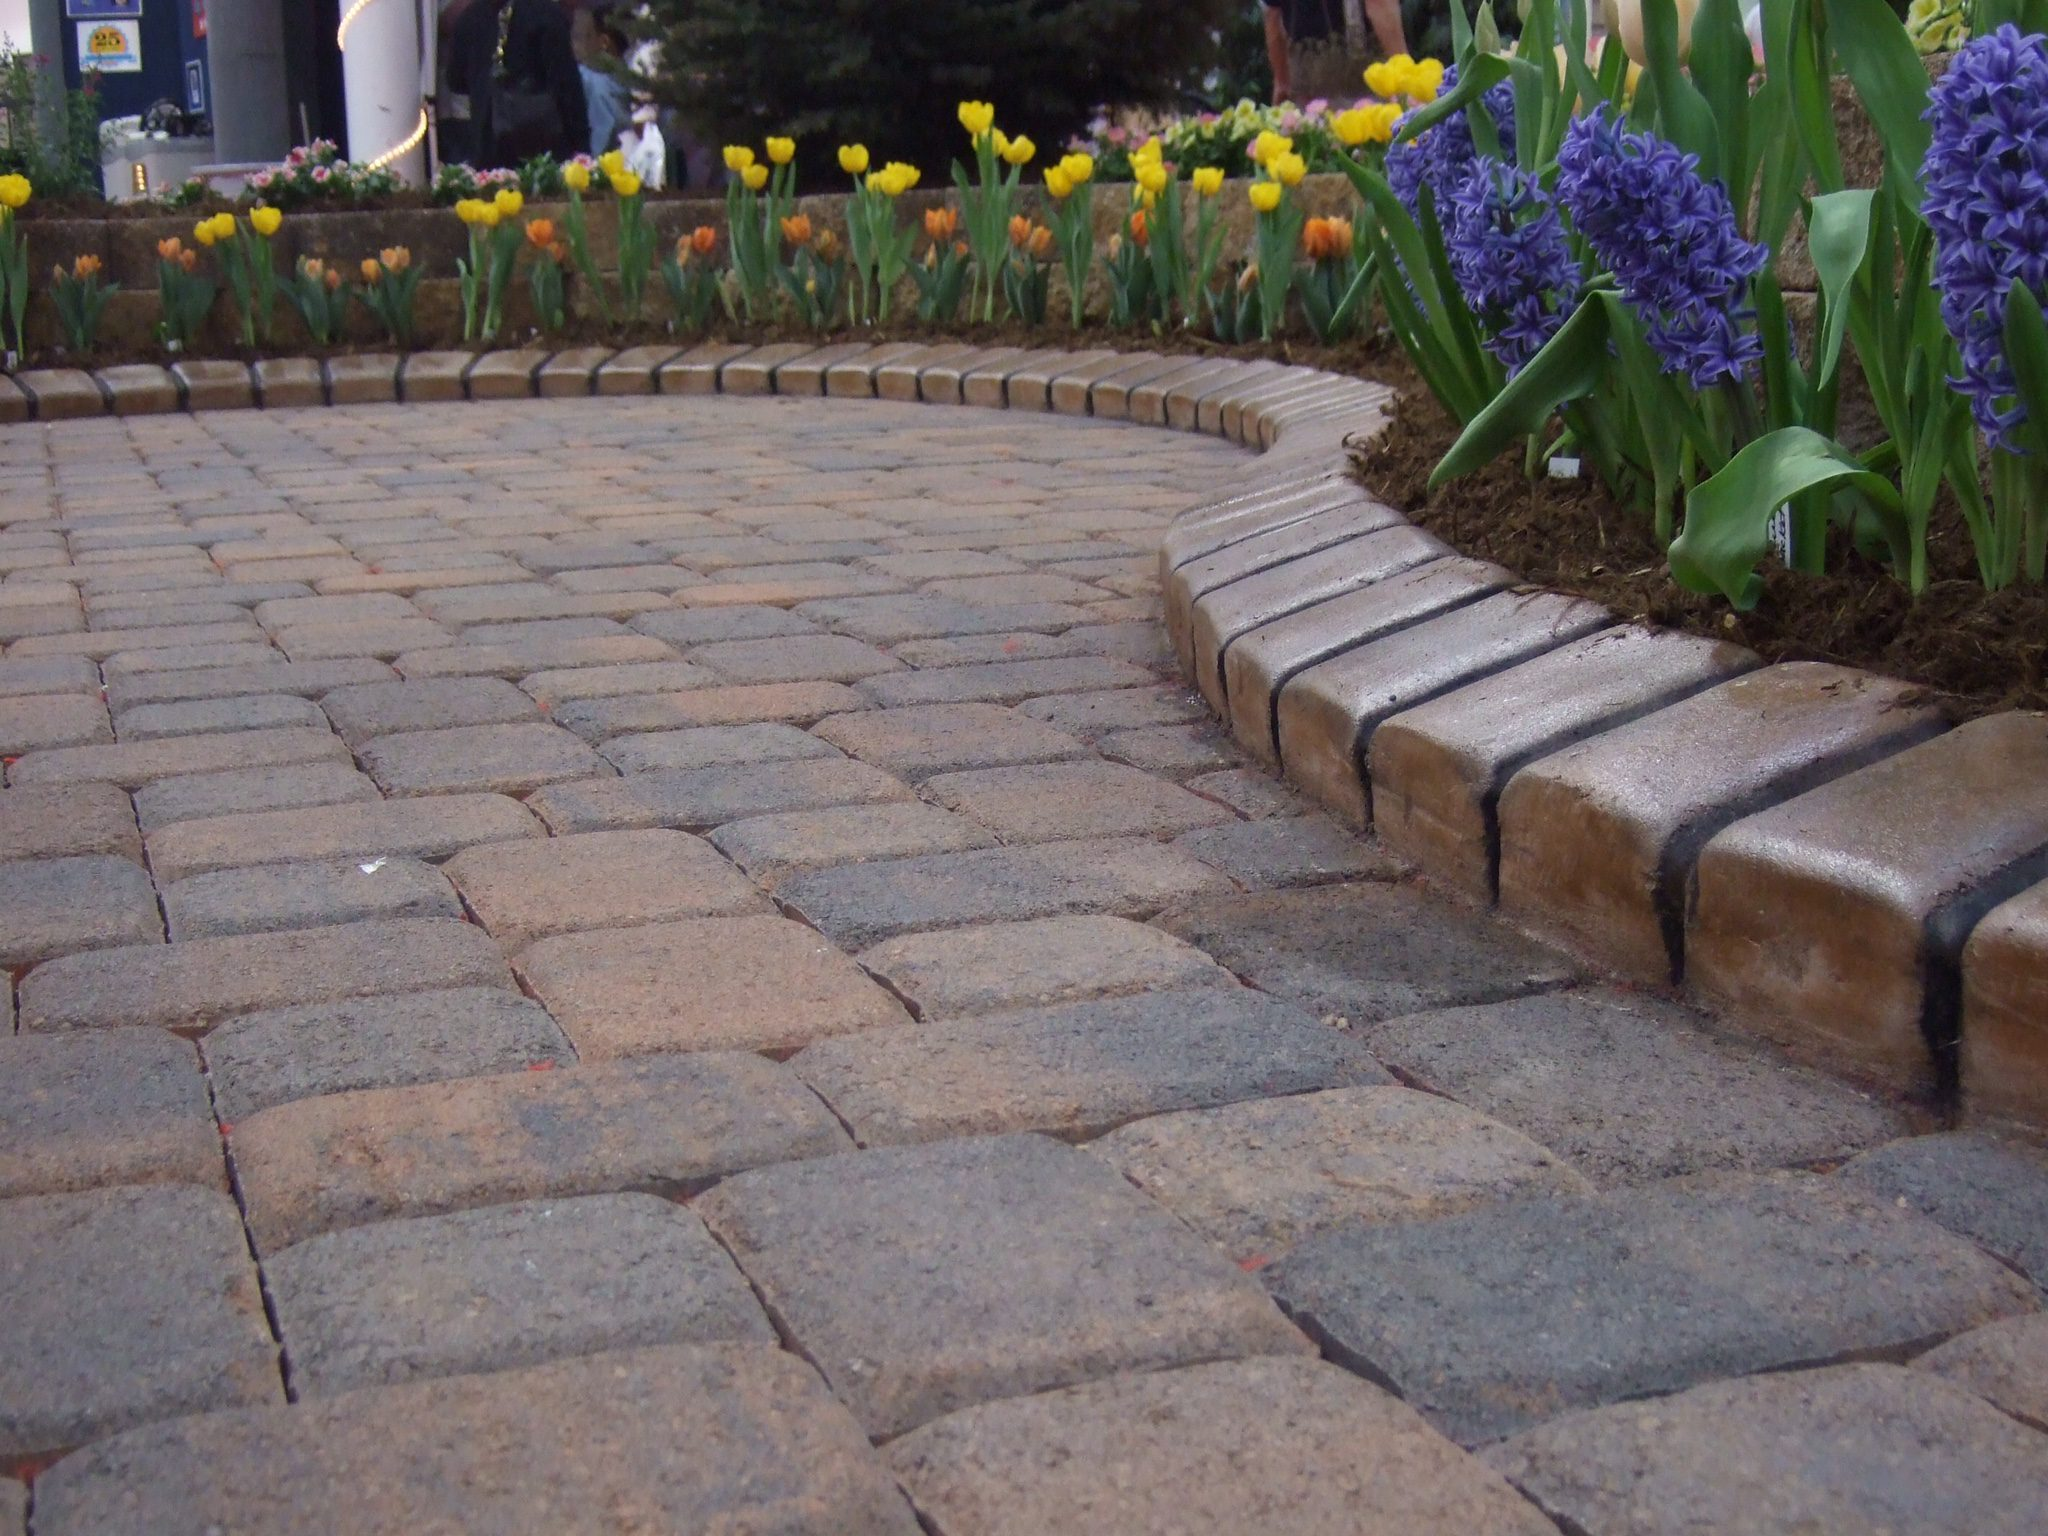 Decorative concrete curbing patterns and colors